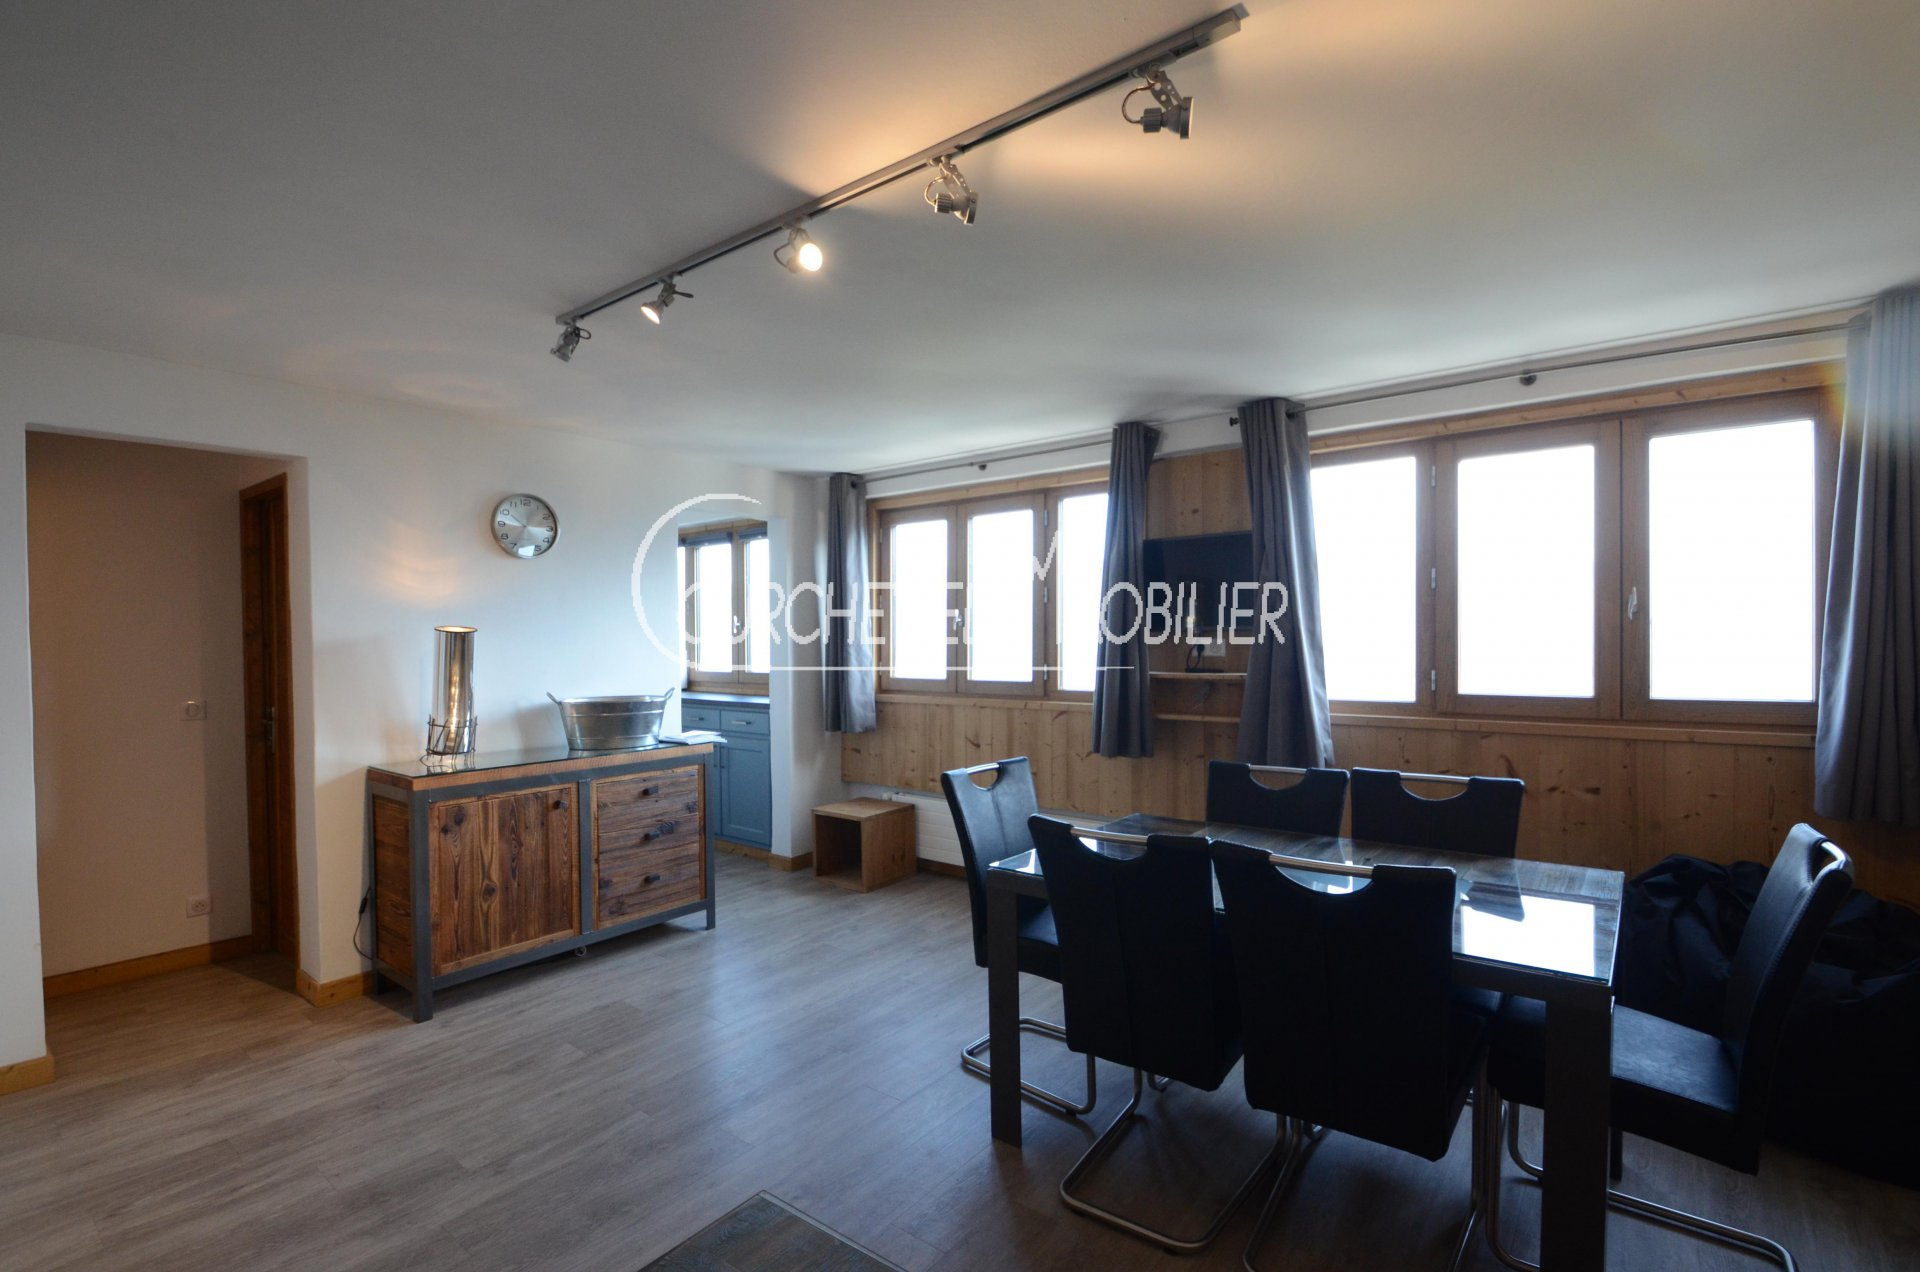 2 bedrooms apartment - Courchevel